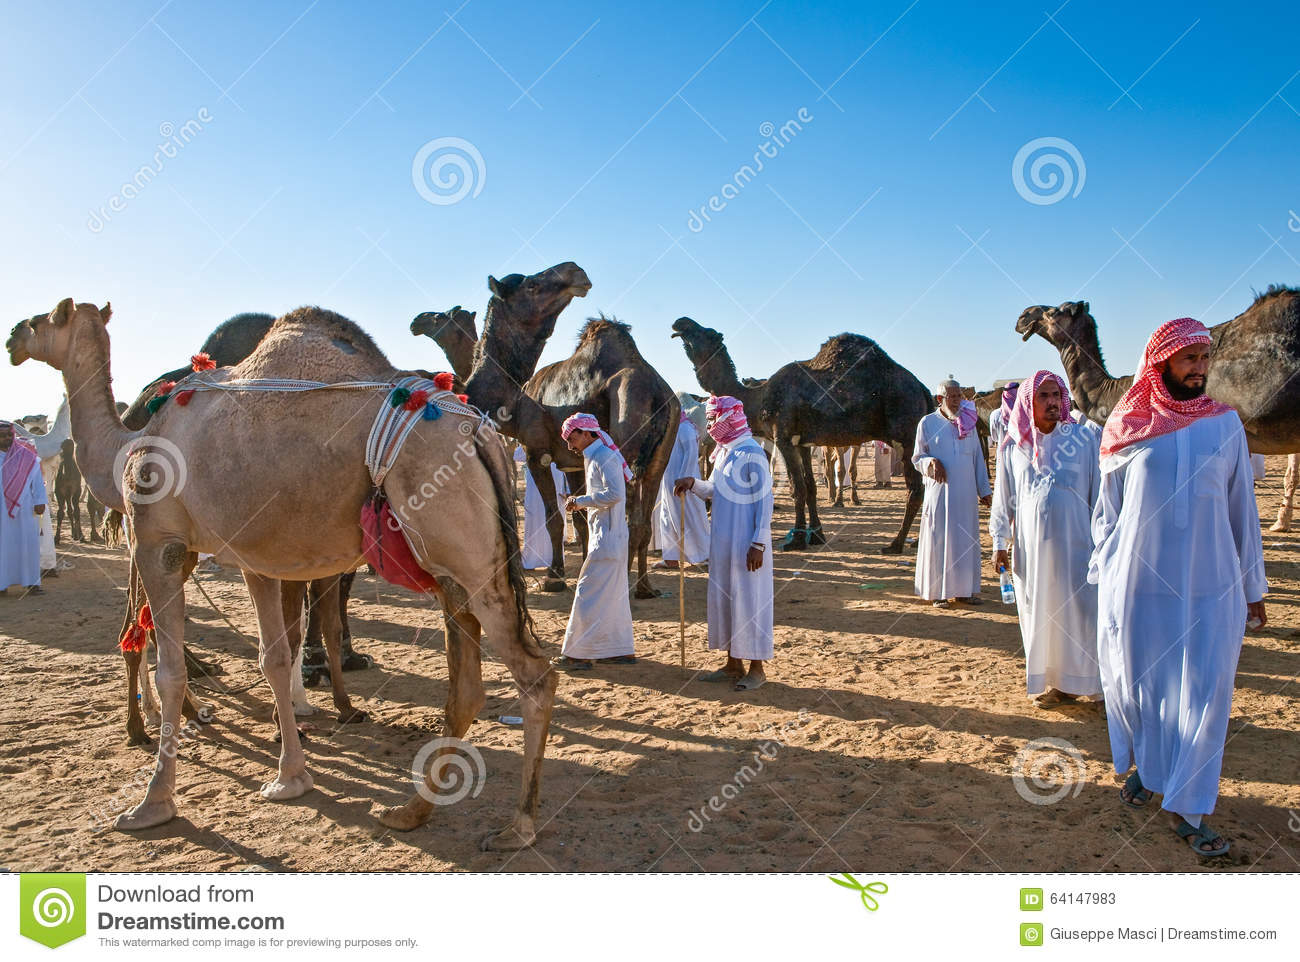 Saudi Arabia editorial stock photo  Image of camel